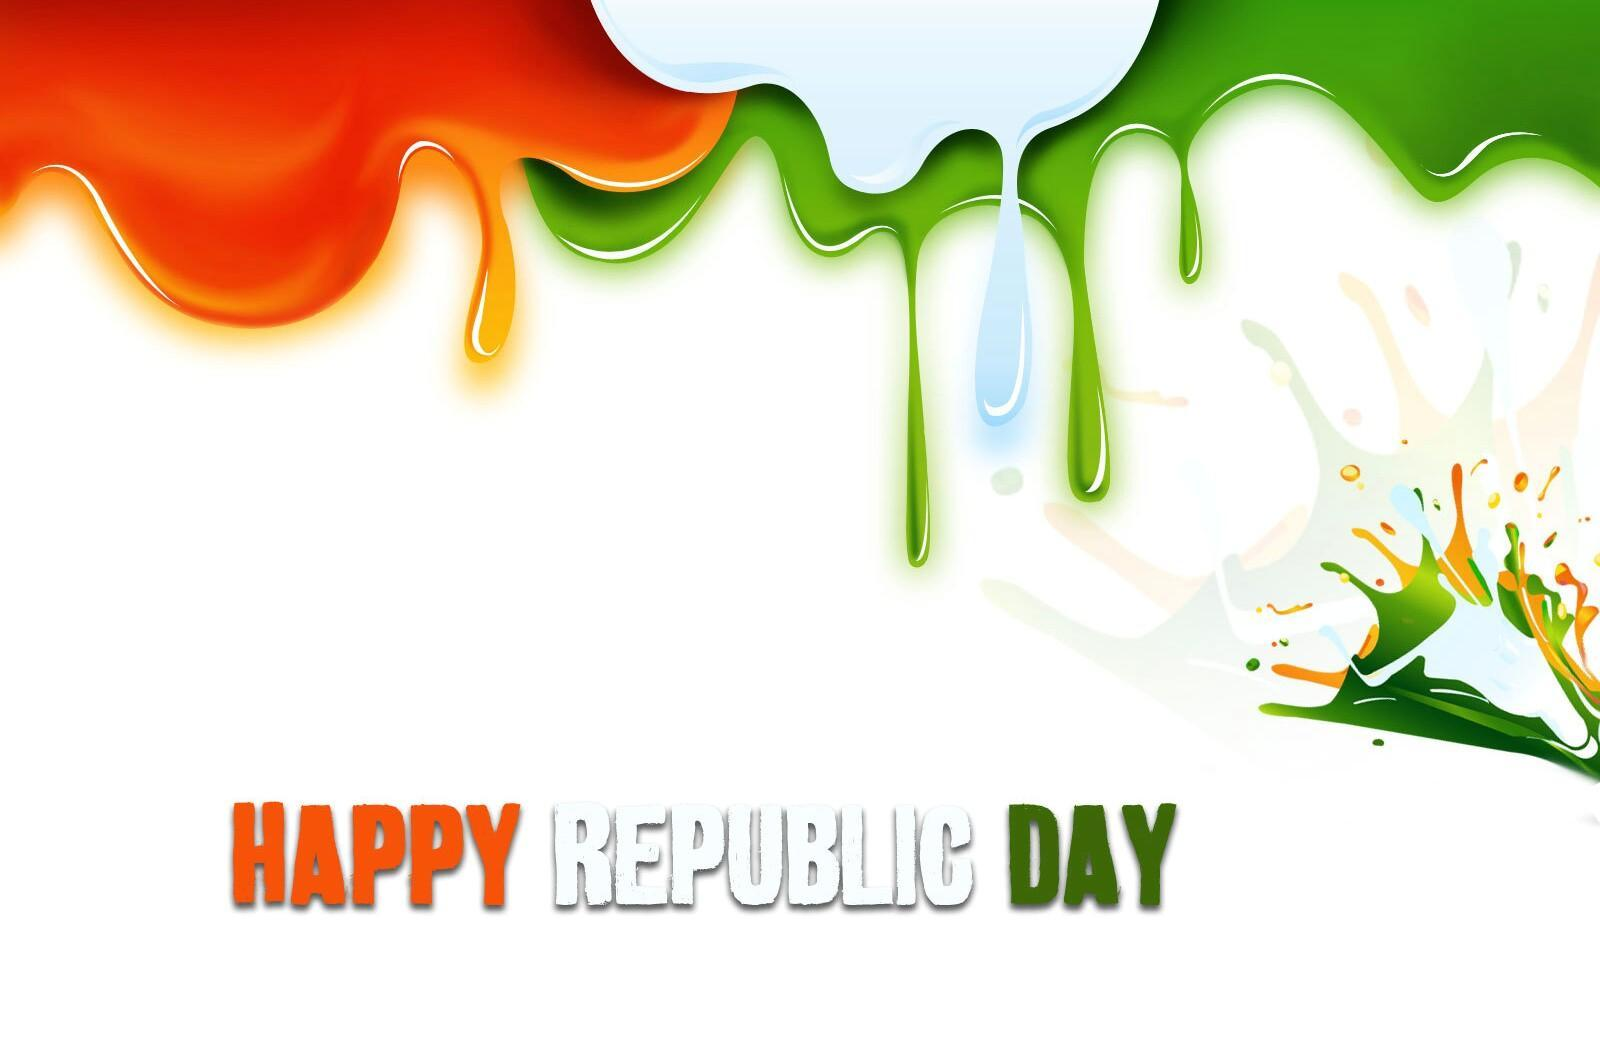 Republic day image6